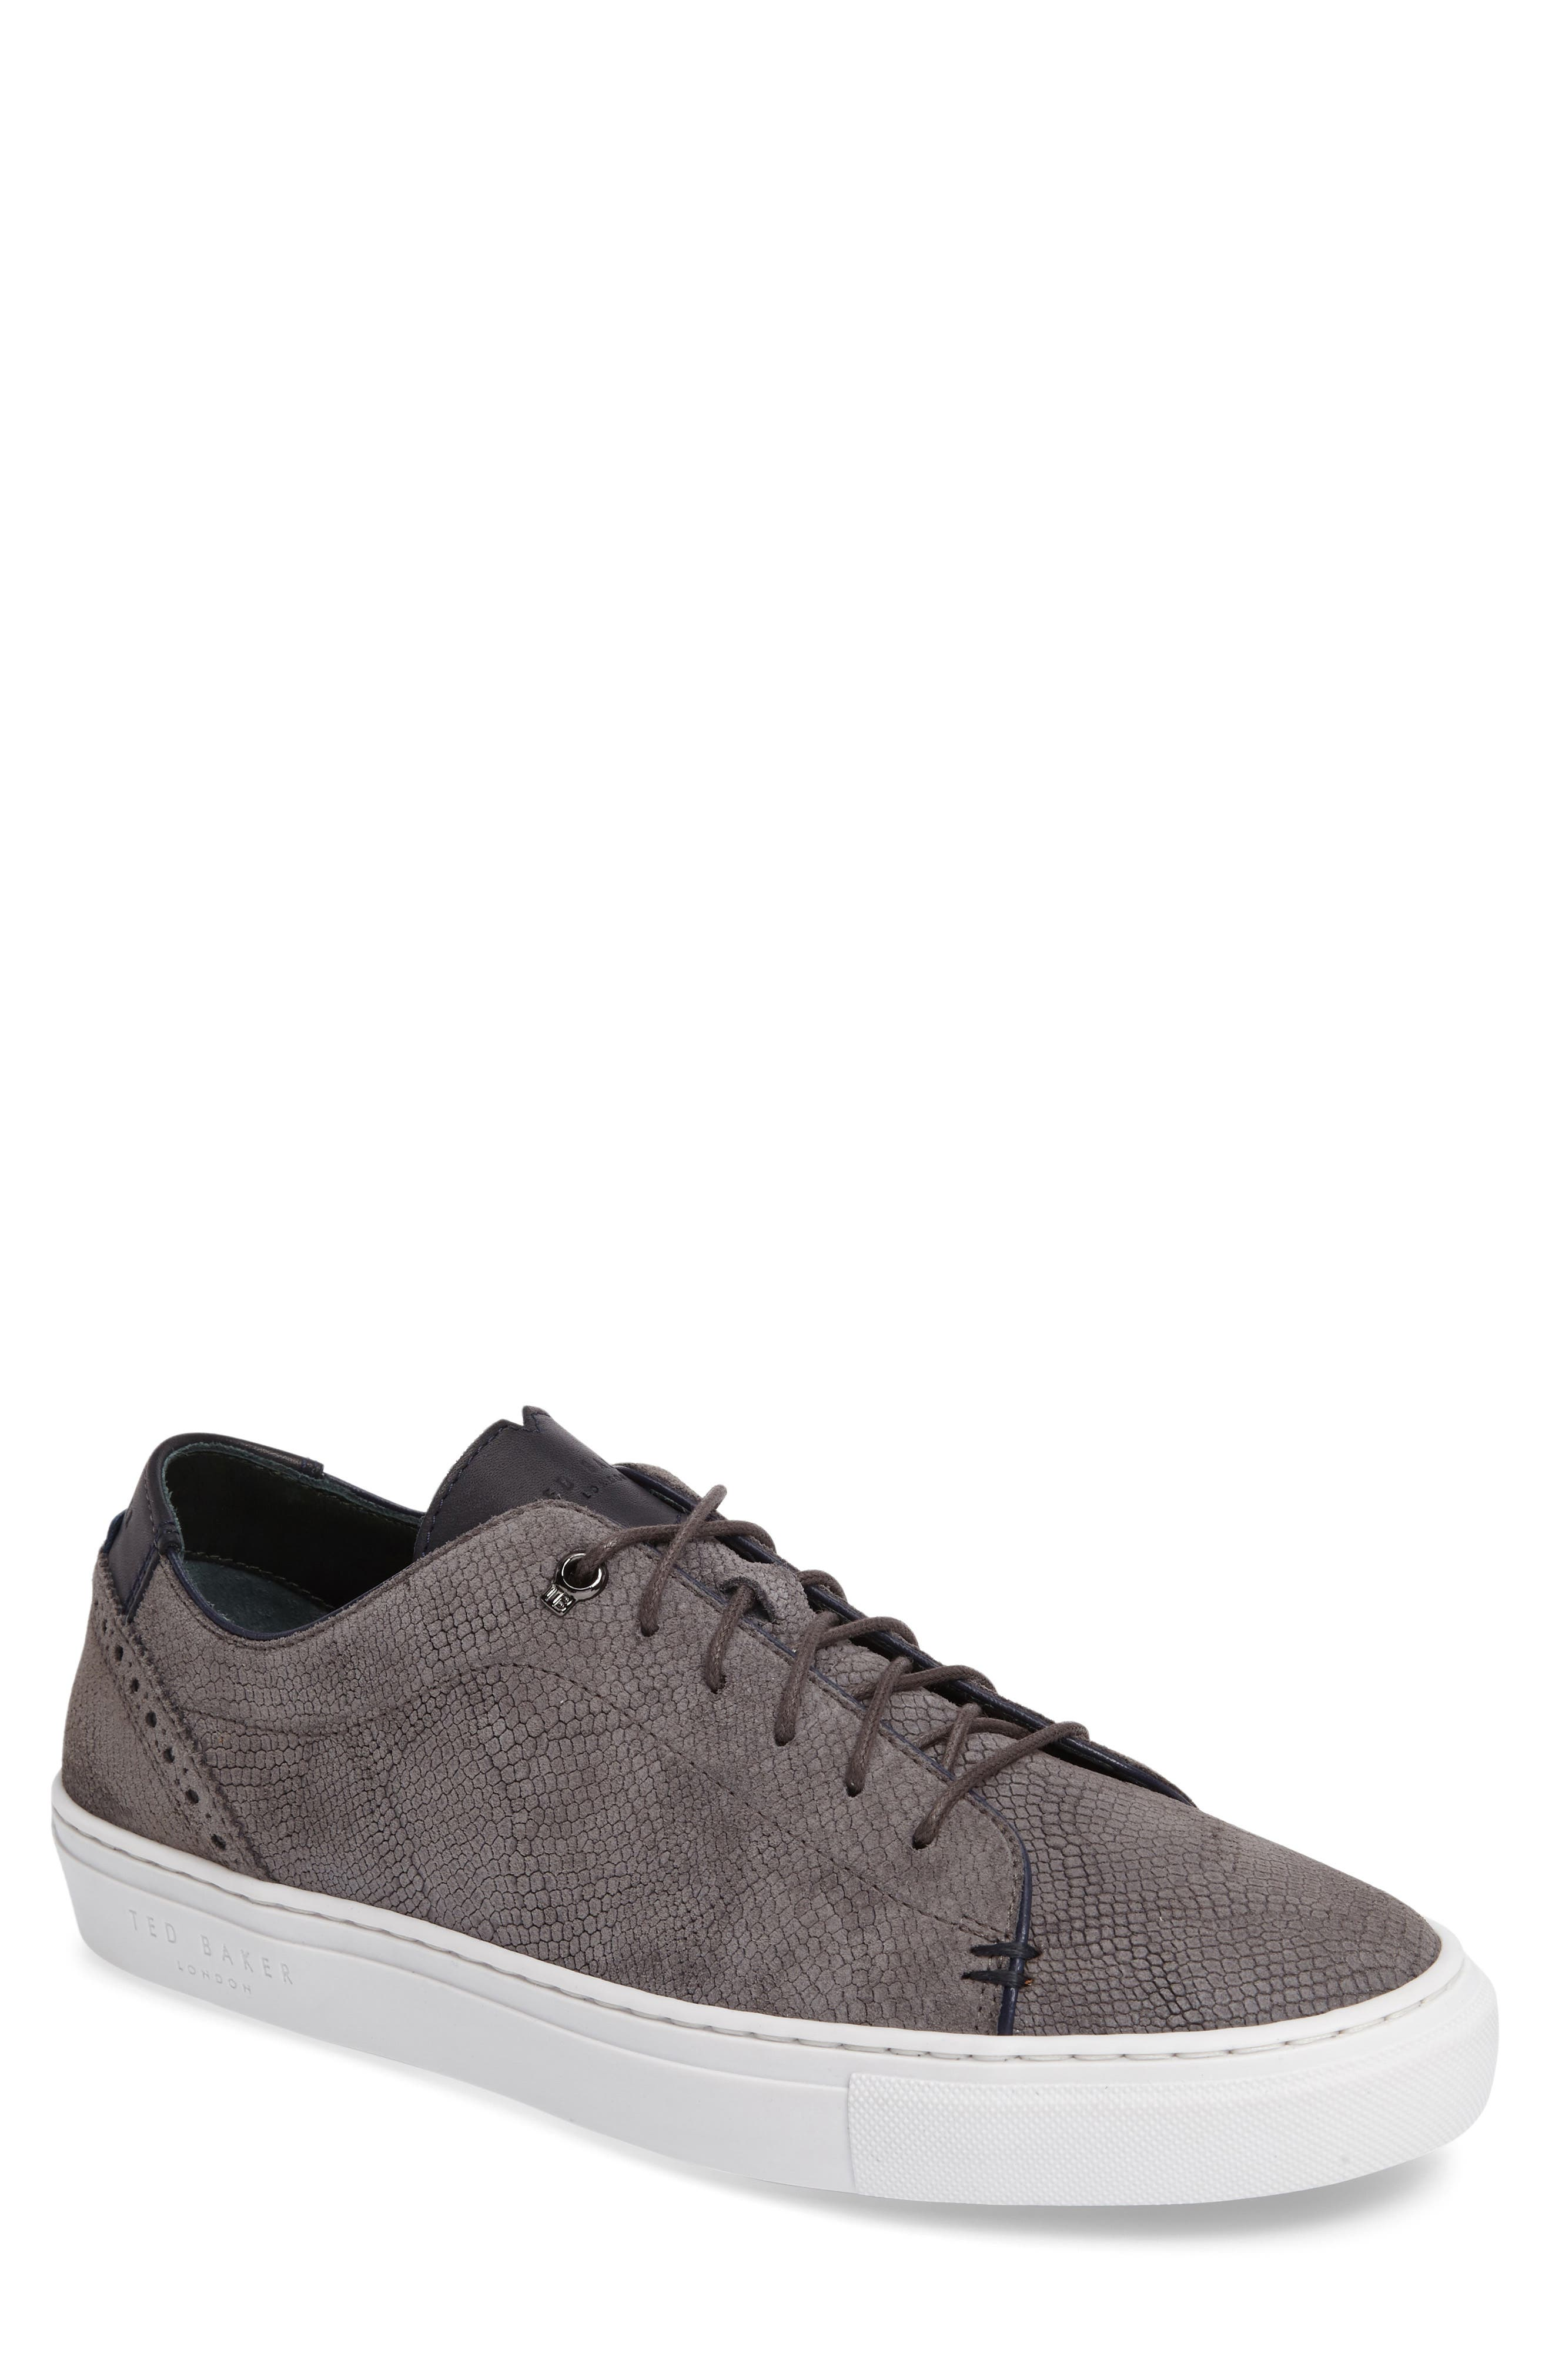 Duke Snake Embossed Sneaker,                         Main,                         color, Dark Grey Suede